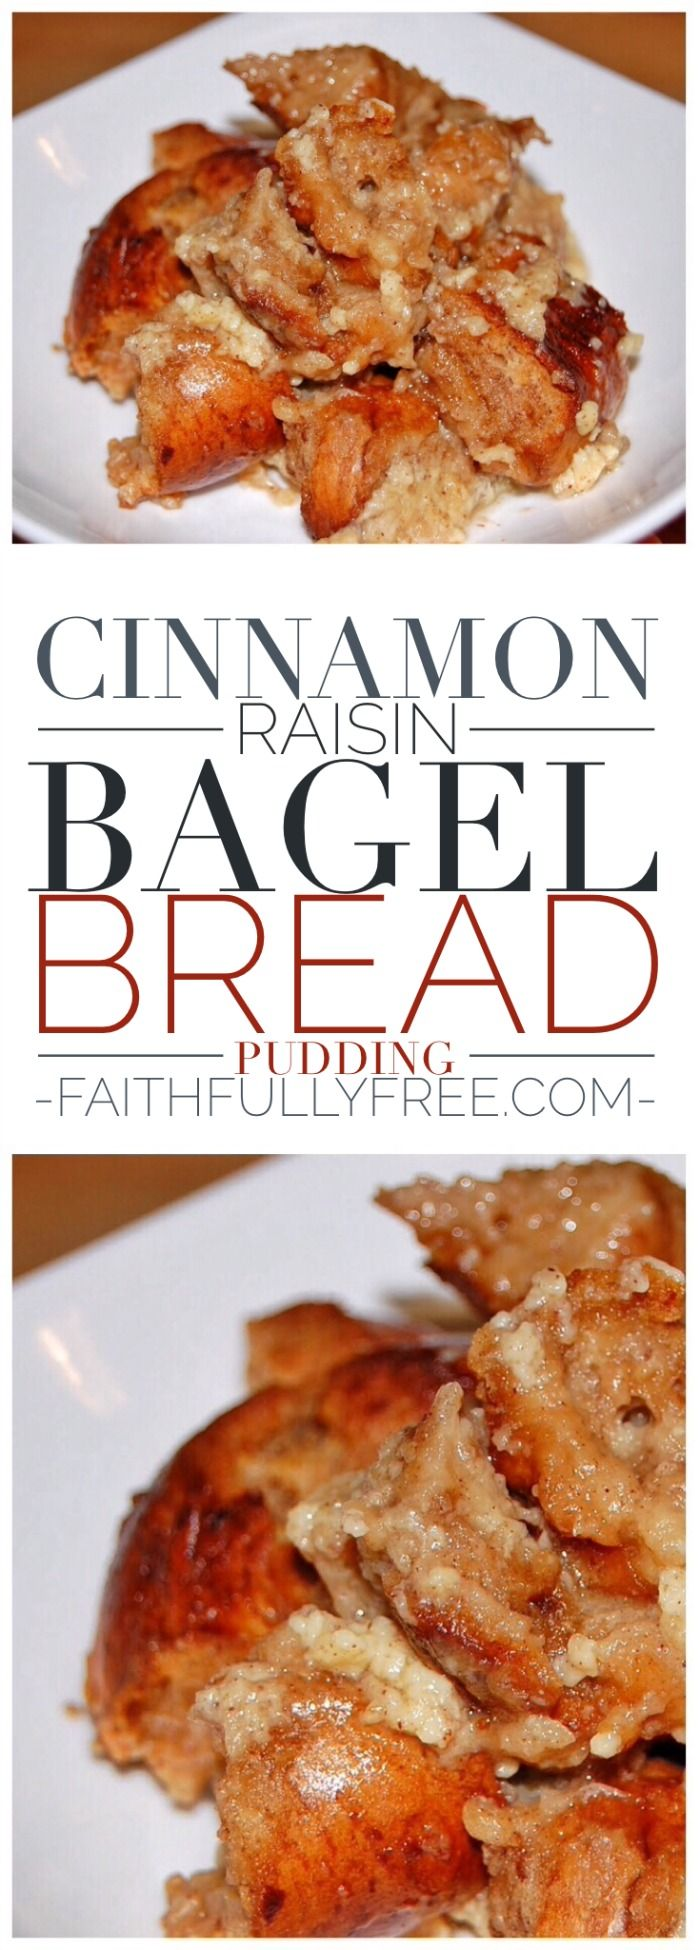 Cinnamon Raisin Bagel Bread Pudding is so yummy! The last time I bought Lender's Bagels B1G1 one whole bag sat in my refrigerator until they were too old